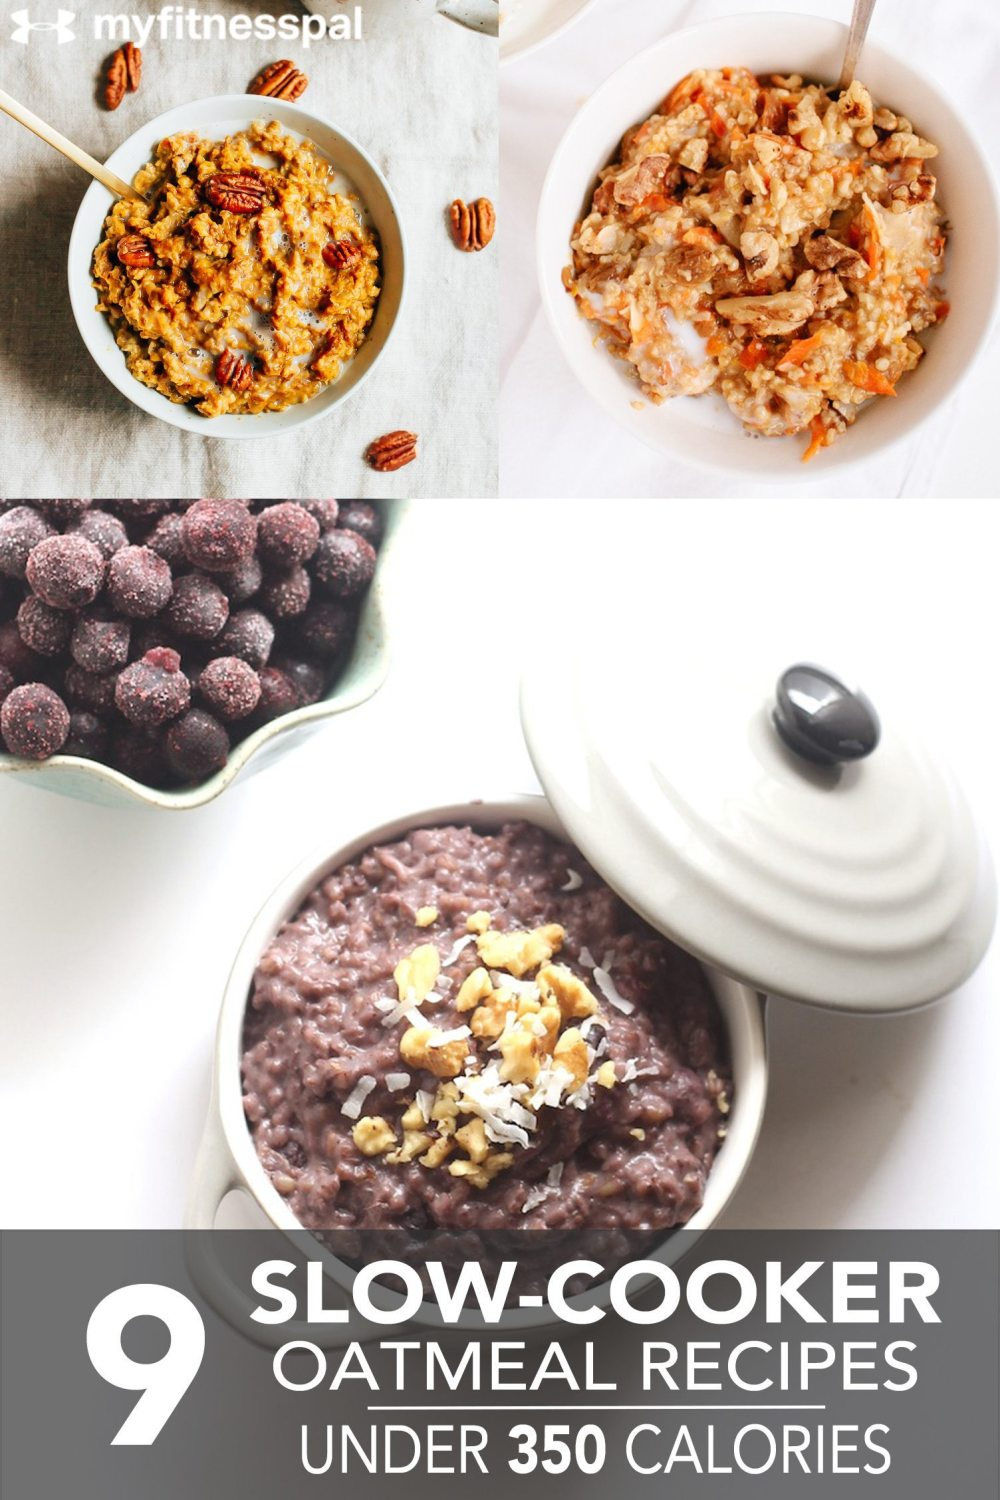 9-slow-cooker-oatmeal-recipes-under-350-calories-1504x2256